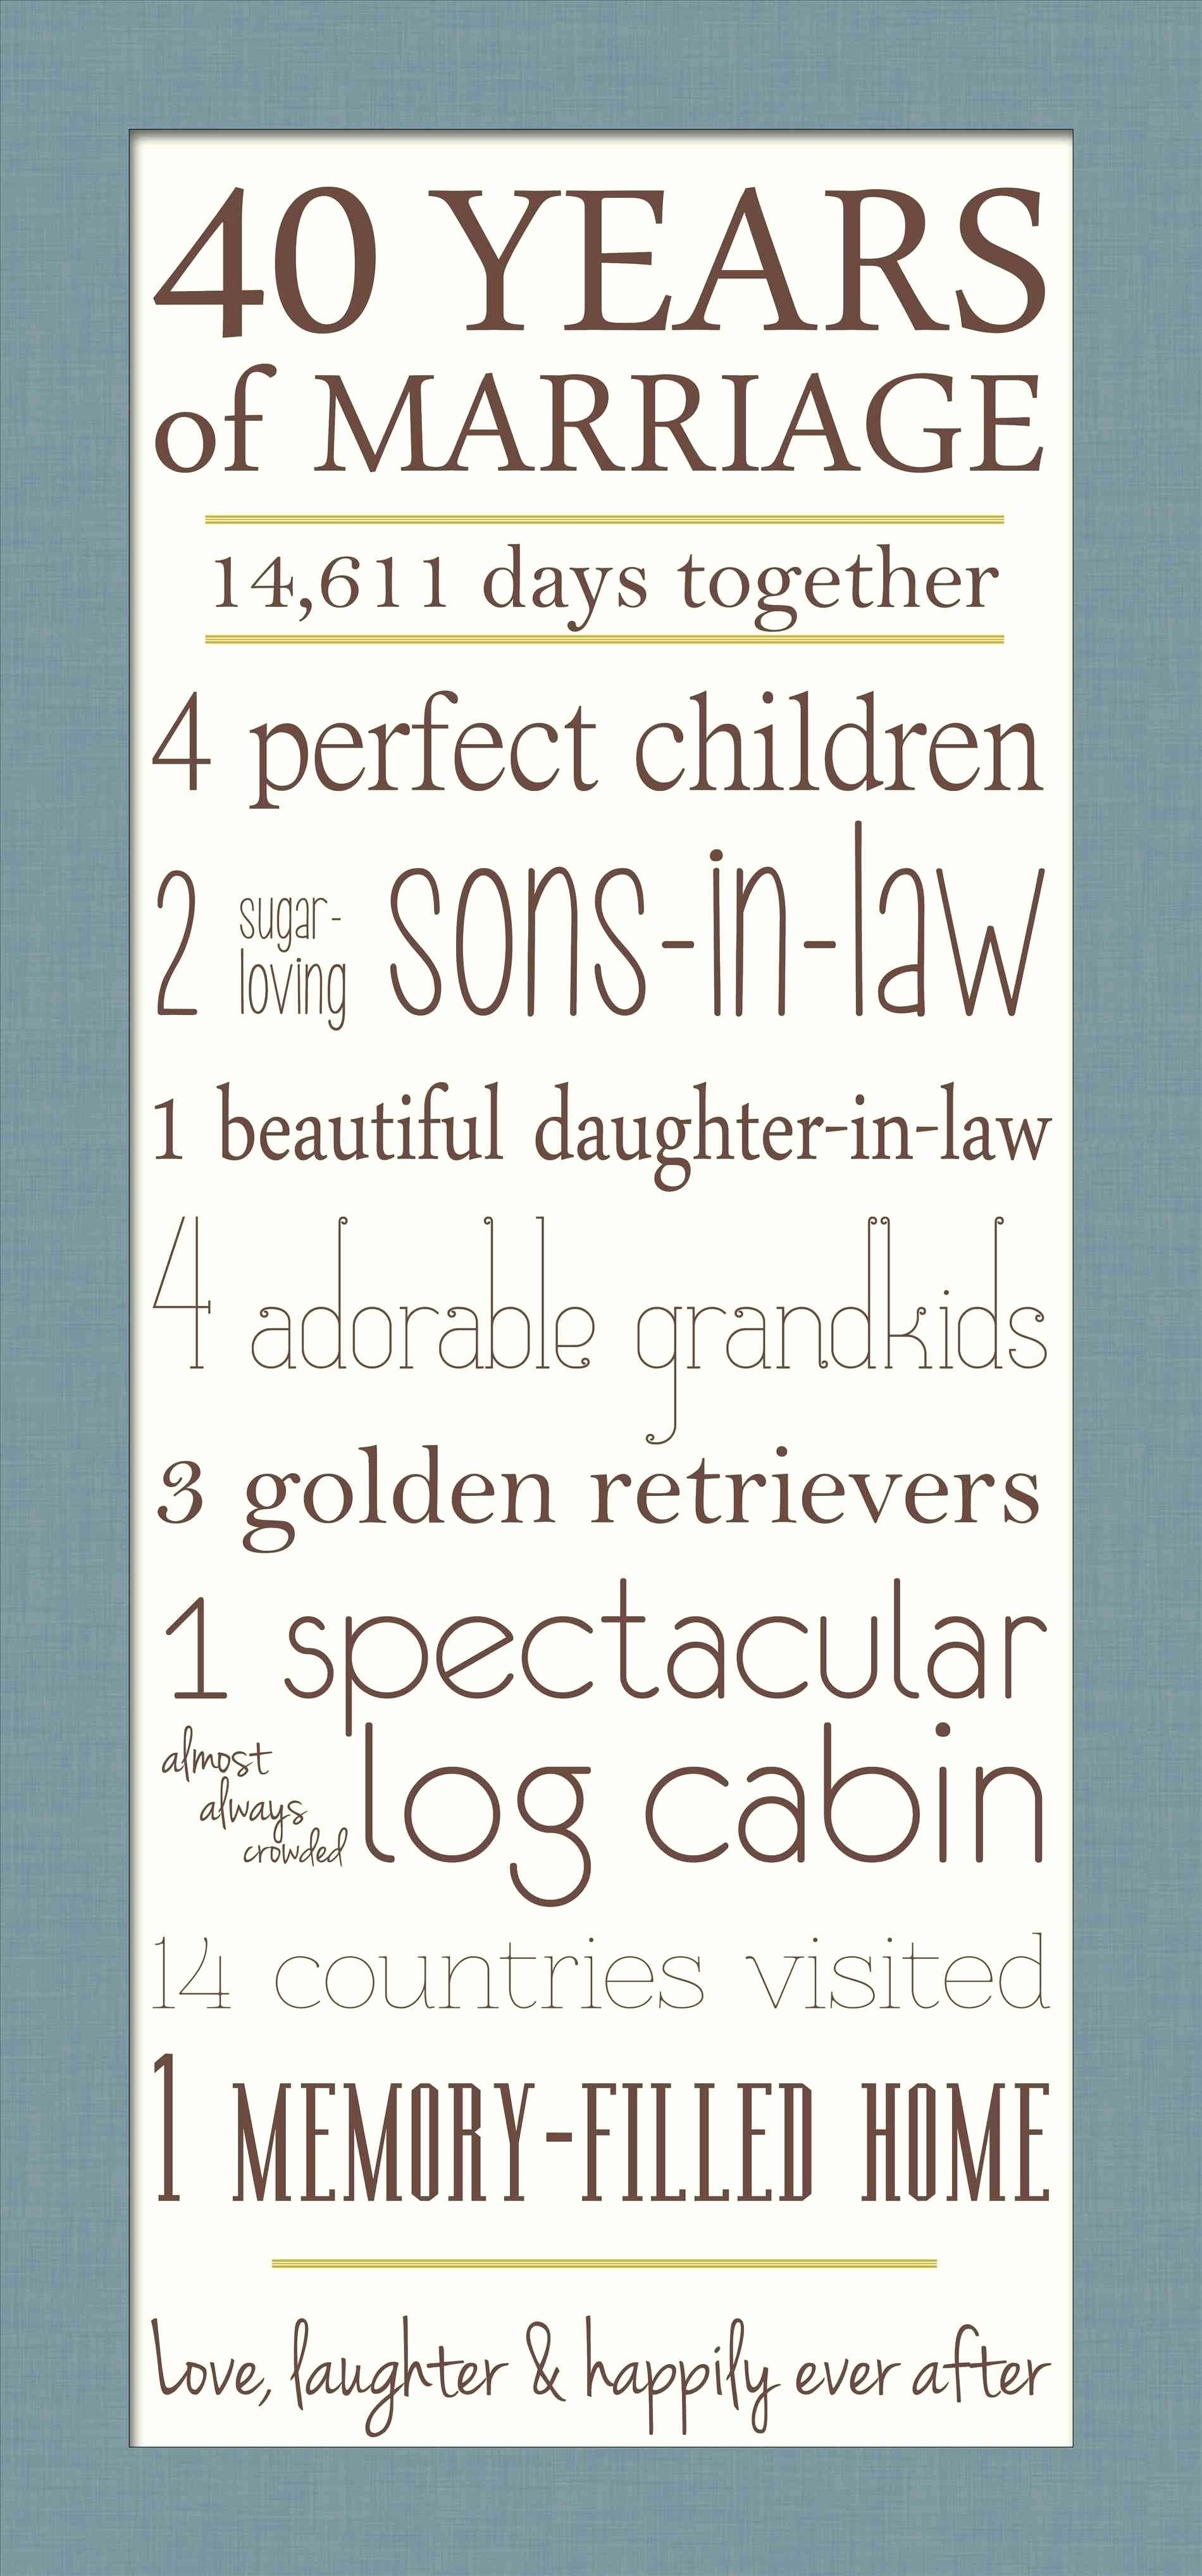 10 Famous 40Th Anniversary Gift Ideas For Parents 3 year wedding anniversary gifts elegant 40th wedding anniversary 1 2020